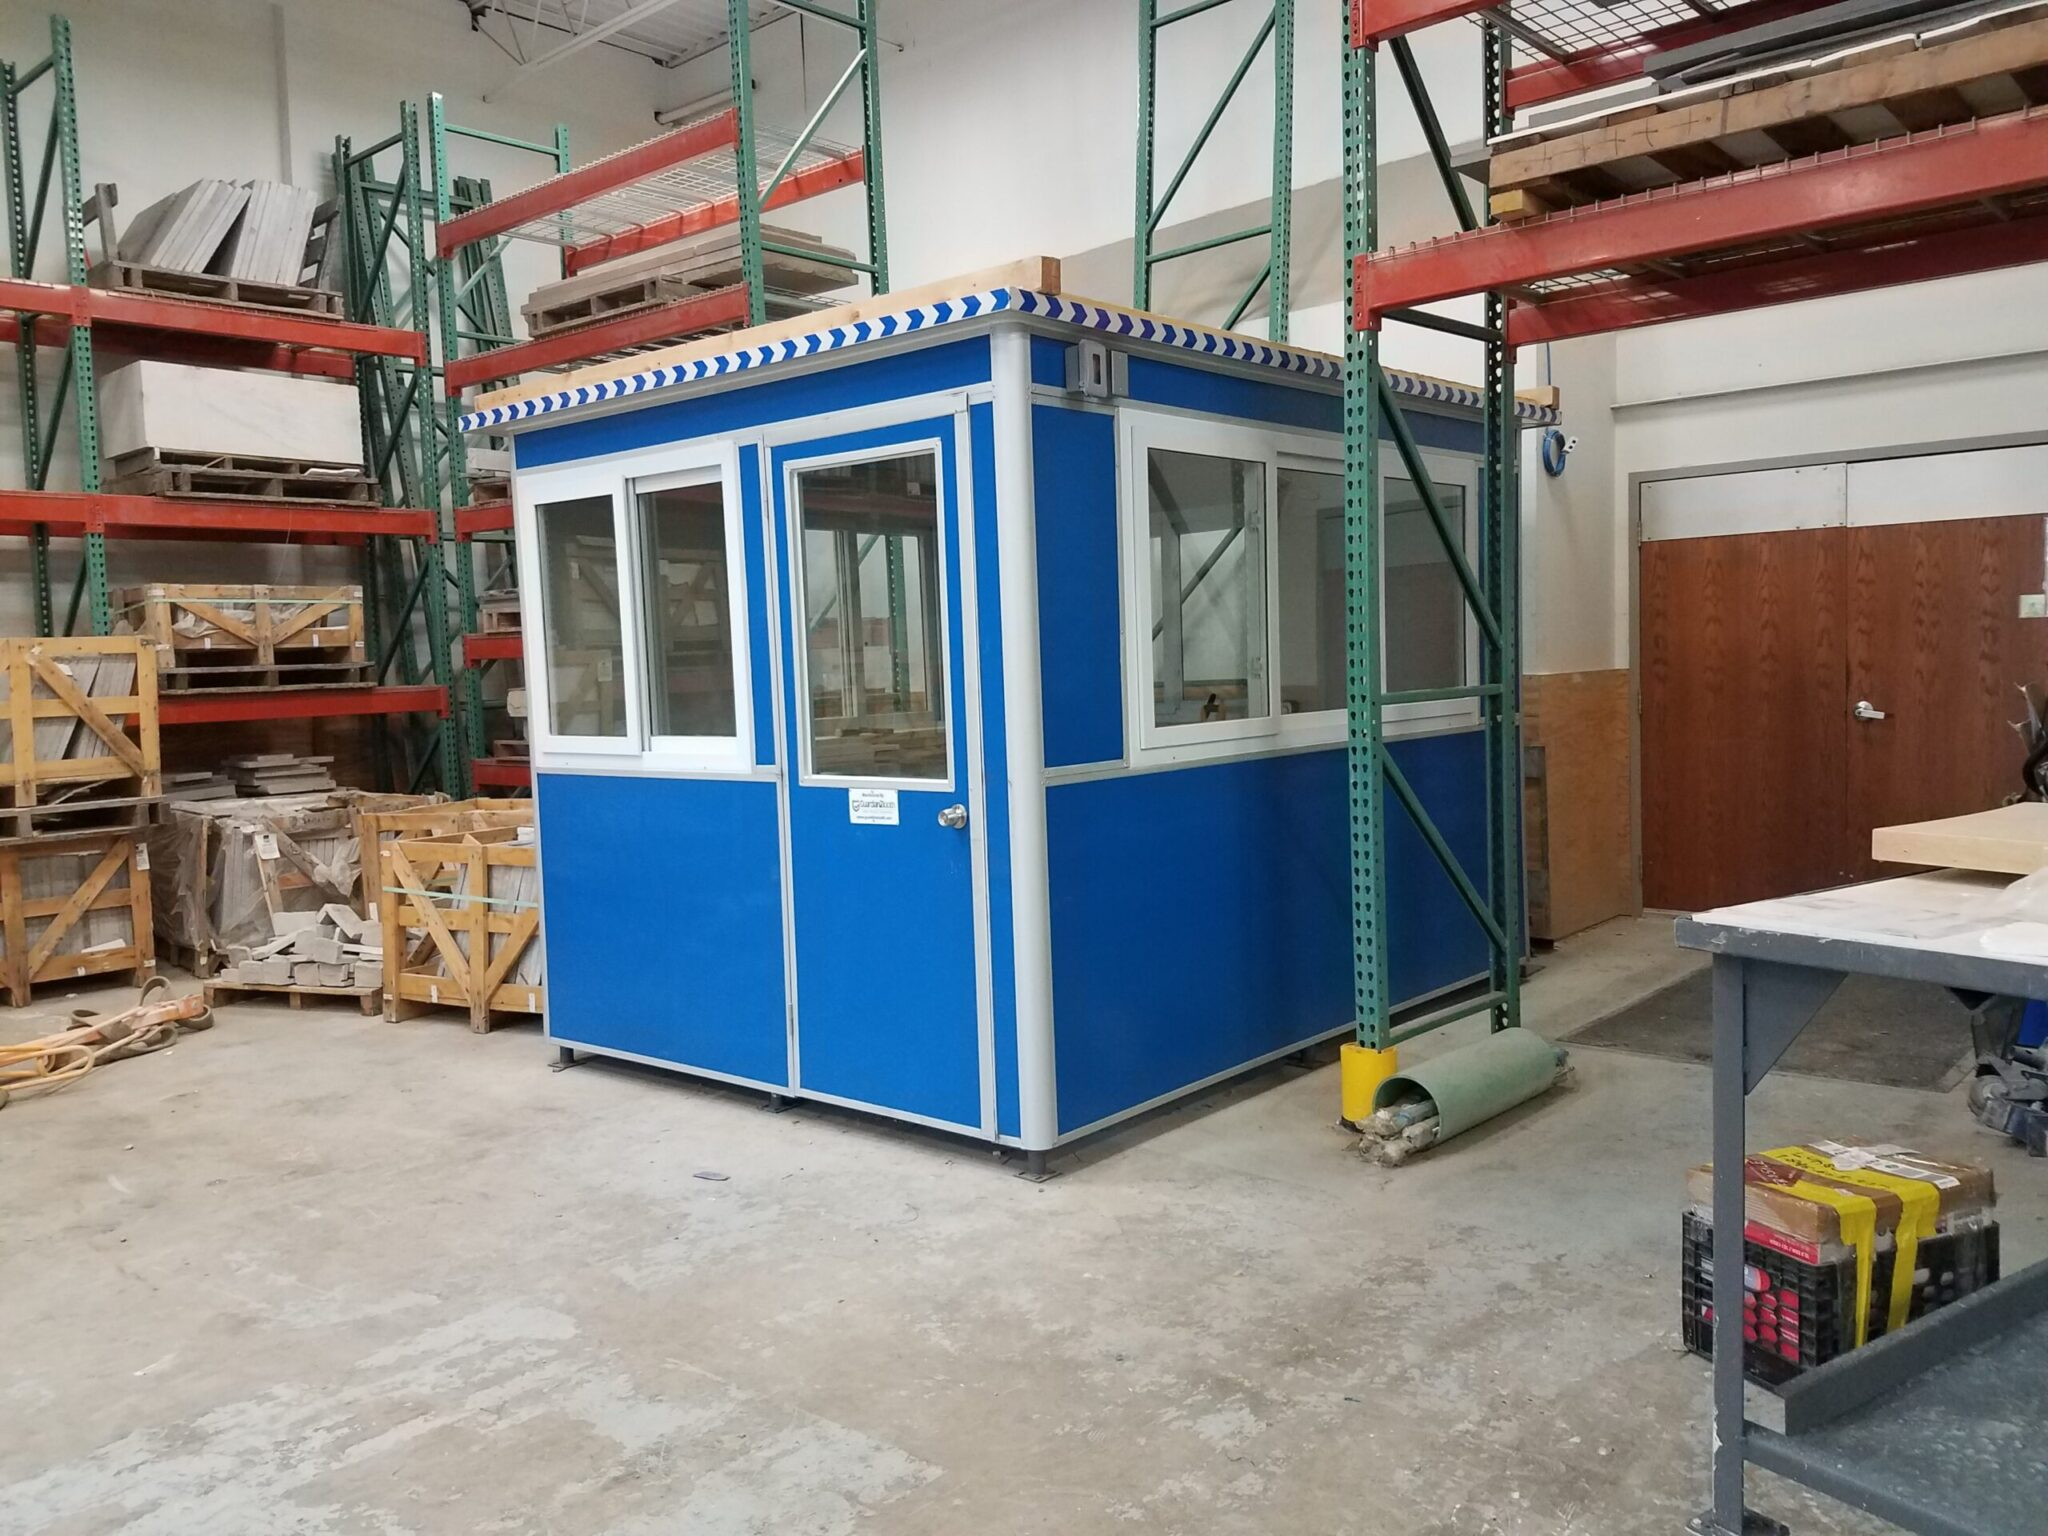 8x10 Modular Office in St Louis Park,MN with Sliding Windows, Baseboard Heaters,Built-in AC, Breaker Panel Box,Ethernet Port and Phone Line